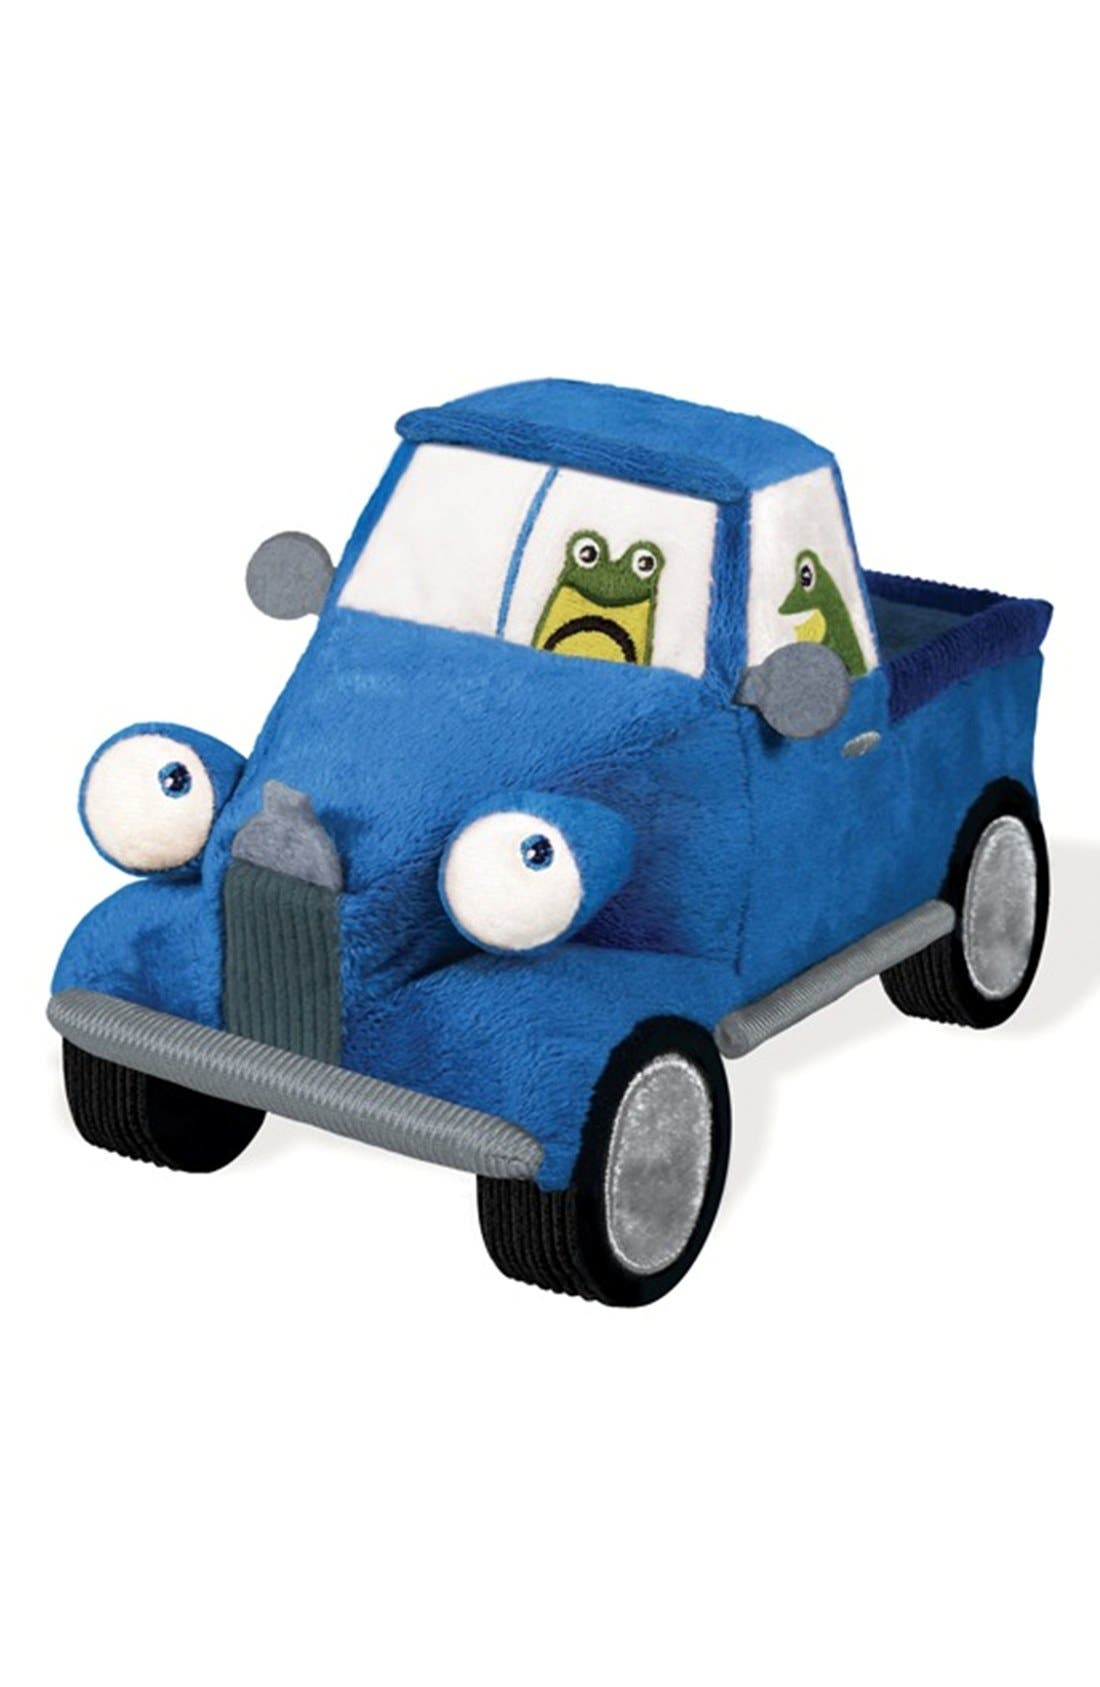 yOttOy Little Blue Truck™ Plush Toy